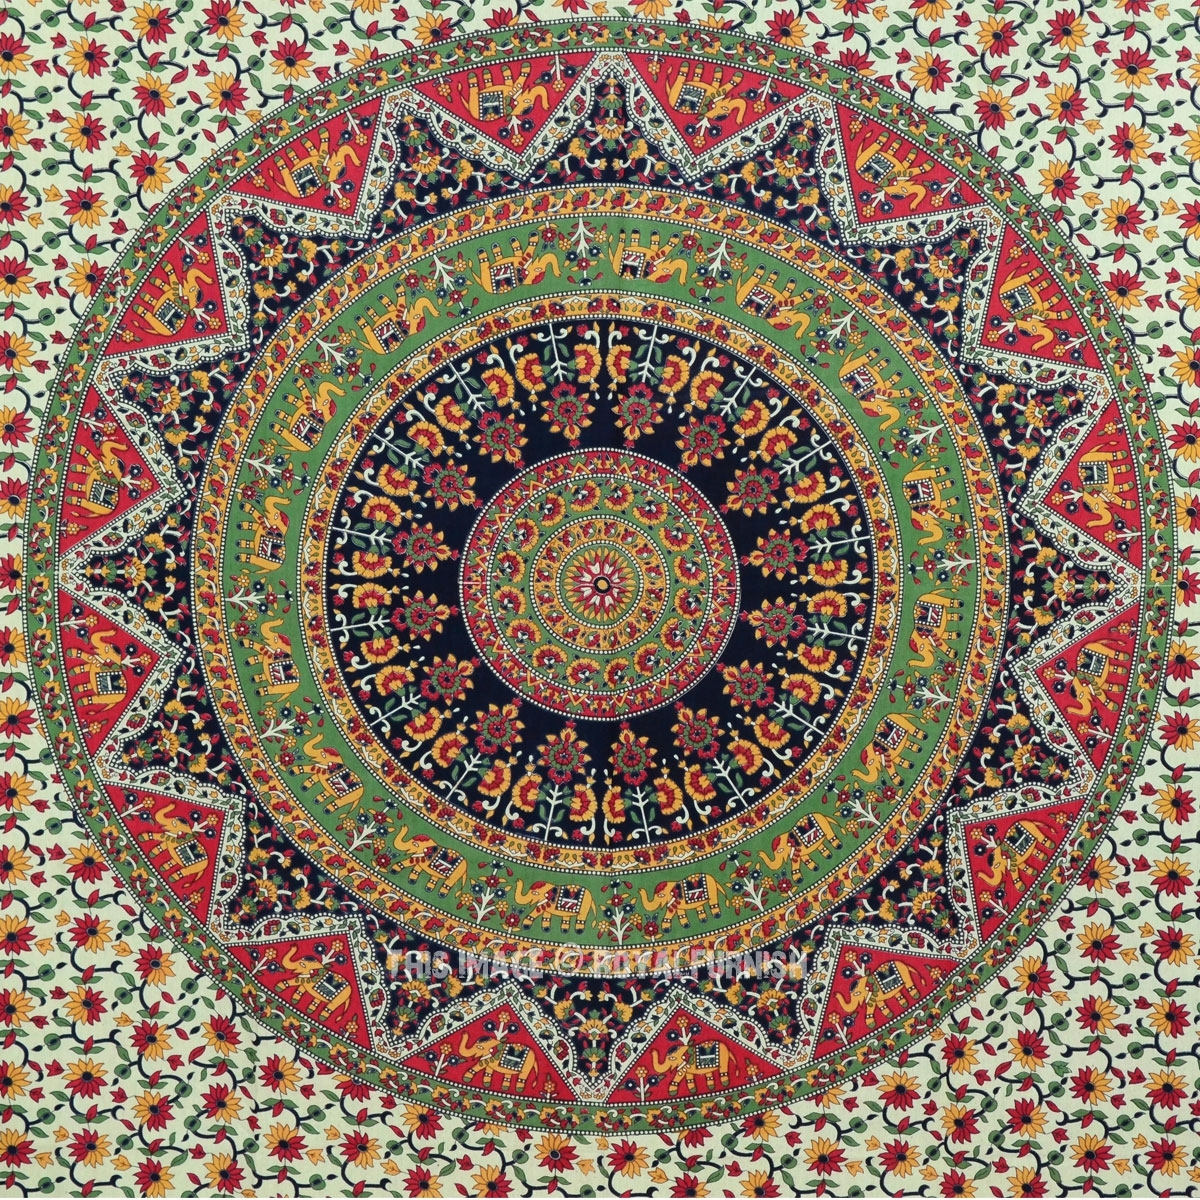 40 Splendid Design Ideas Cloth Wall Hangings | Panfan Site Within Most Recent Indian Fabric Wall Art (View 1 of 15)